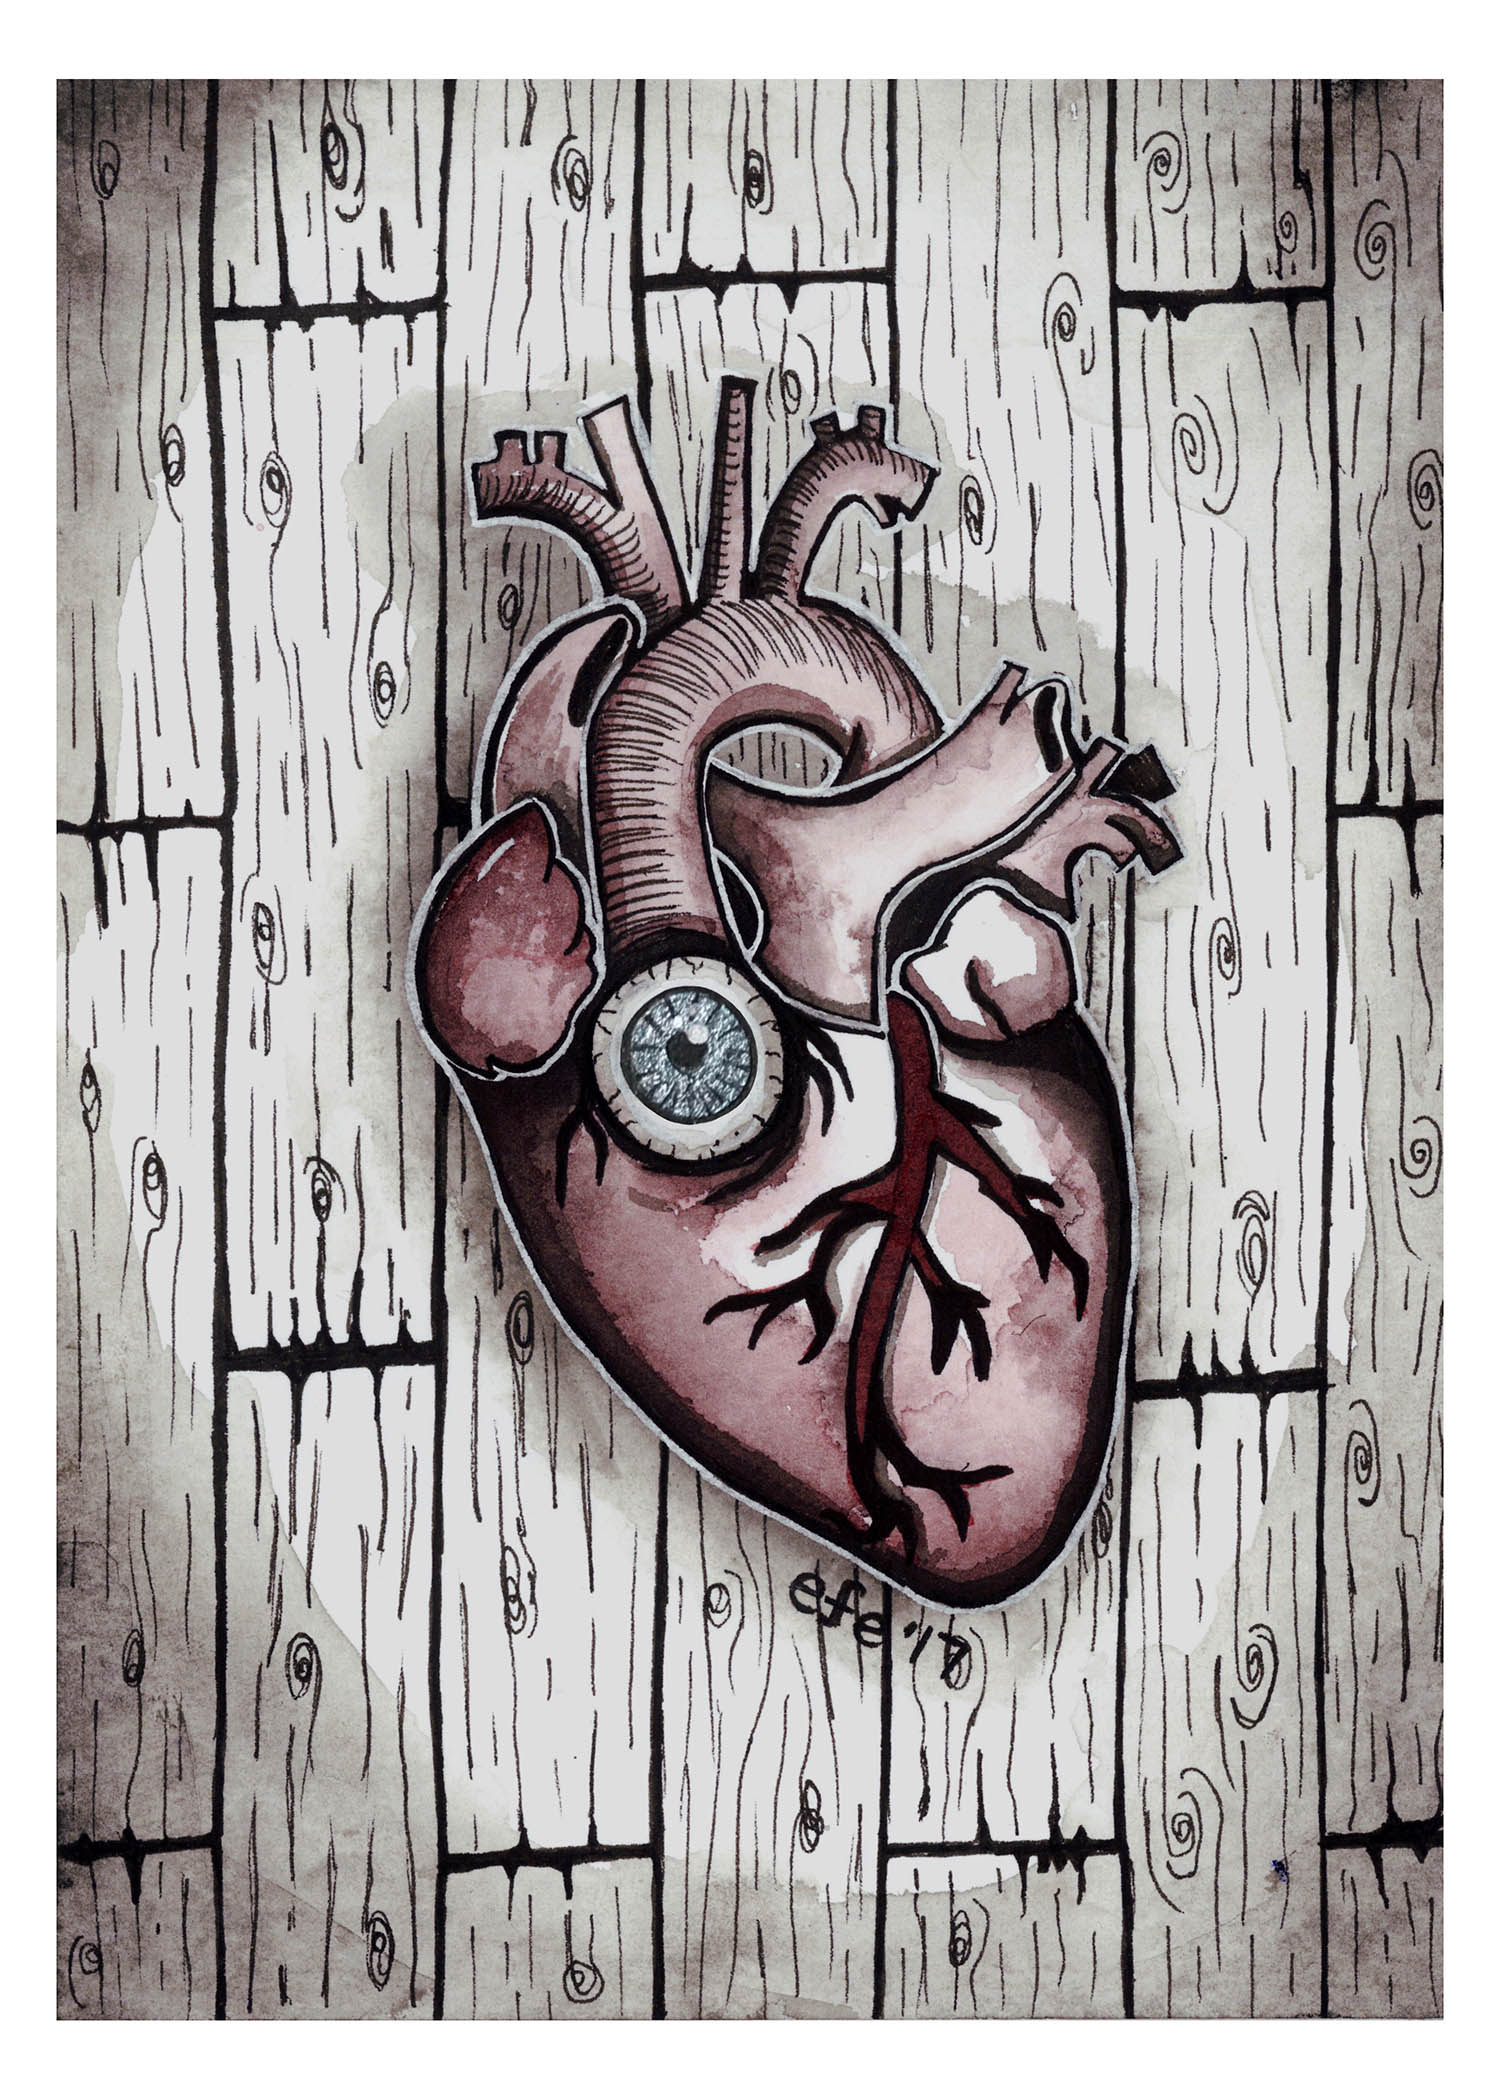 Day 05 - The Tell Tale Heart